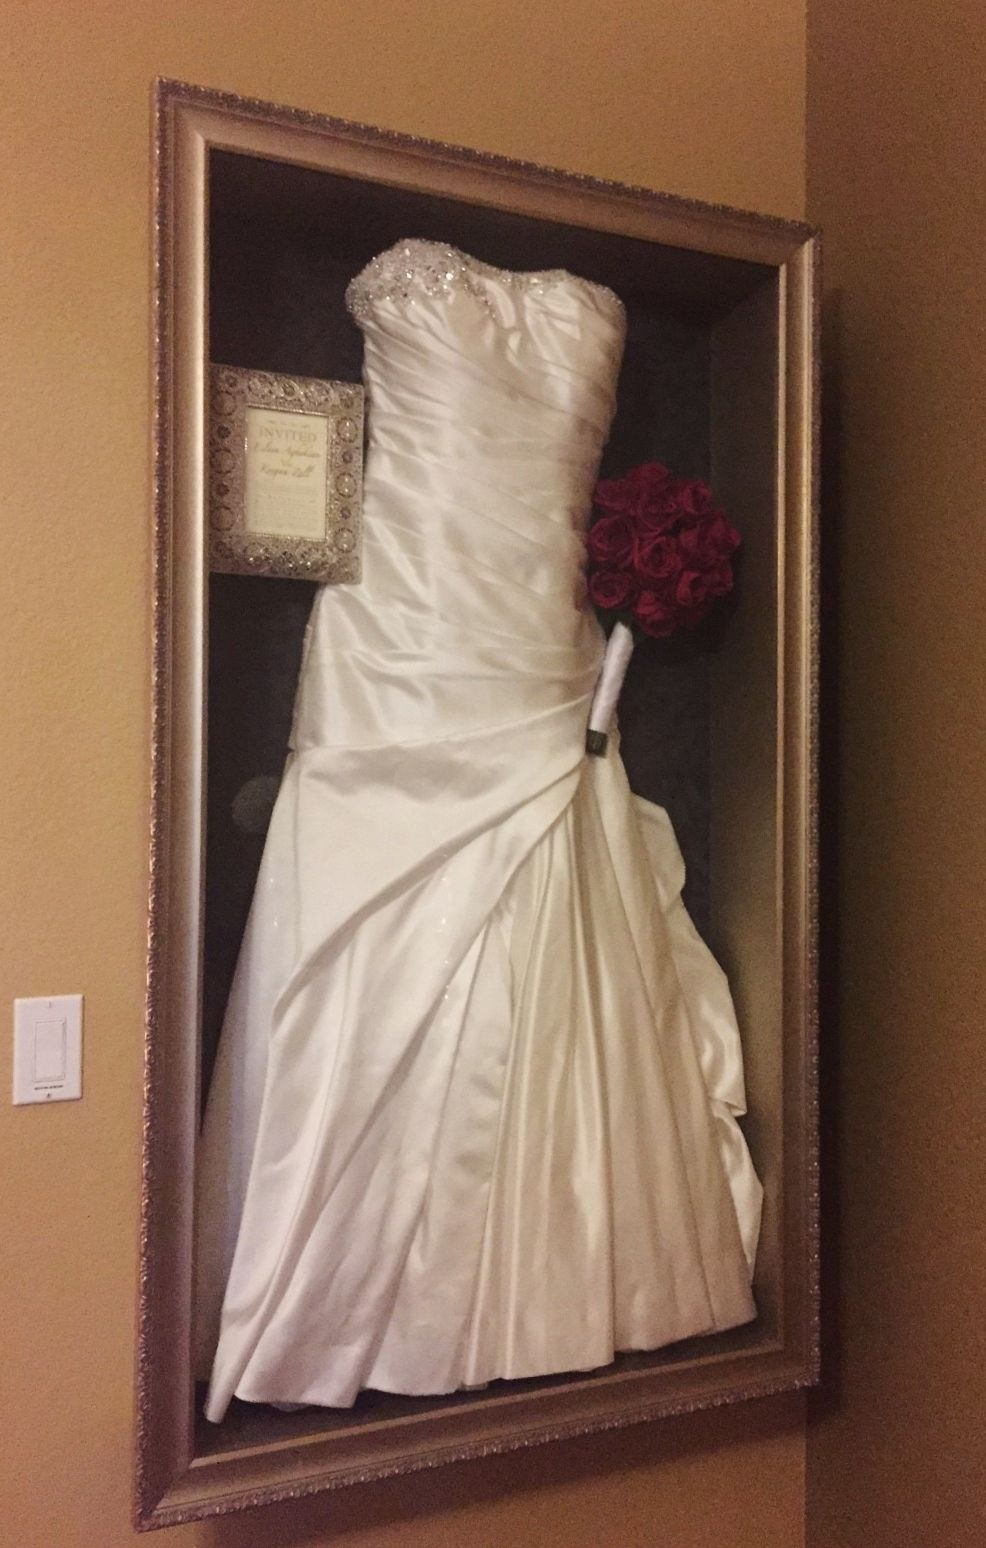 Framed Wedding Dress With Invitation And Bouquet Recessed Into The Wall By Fl